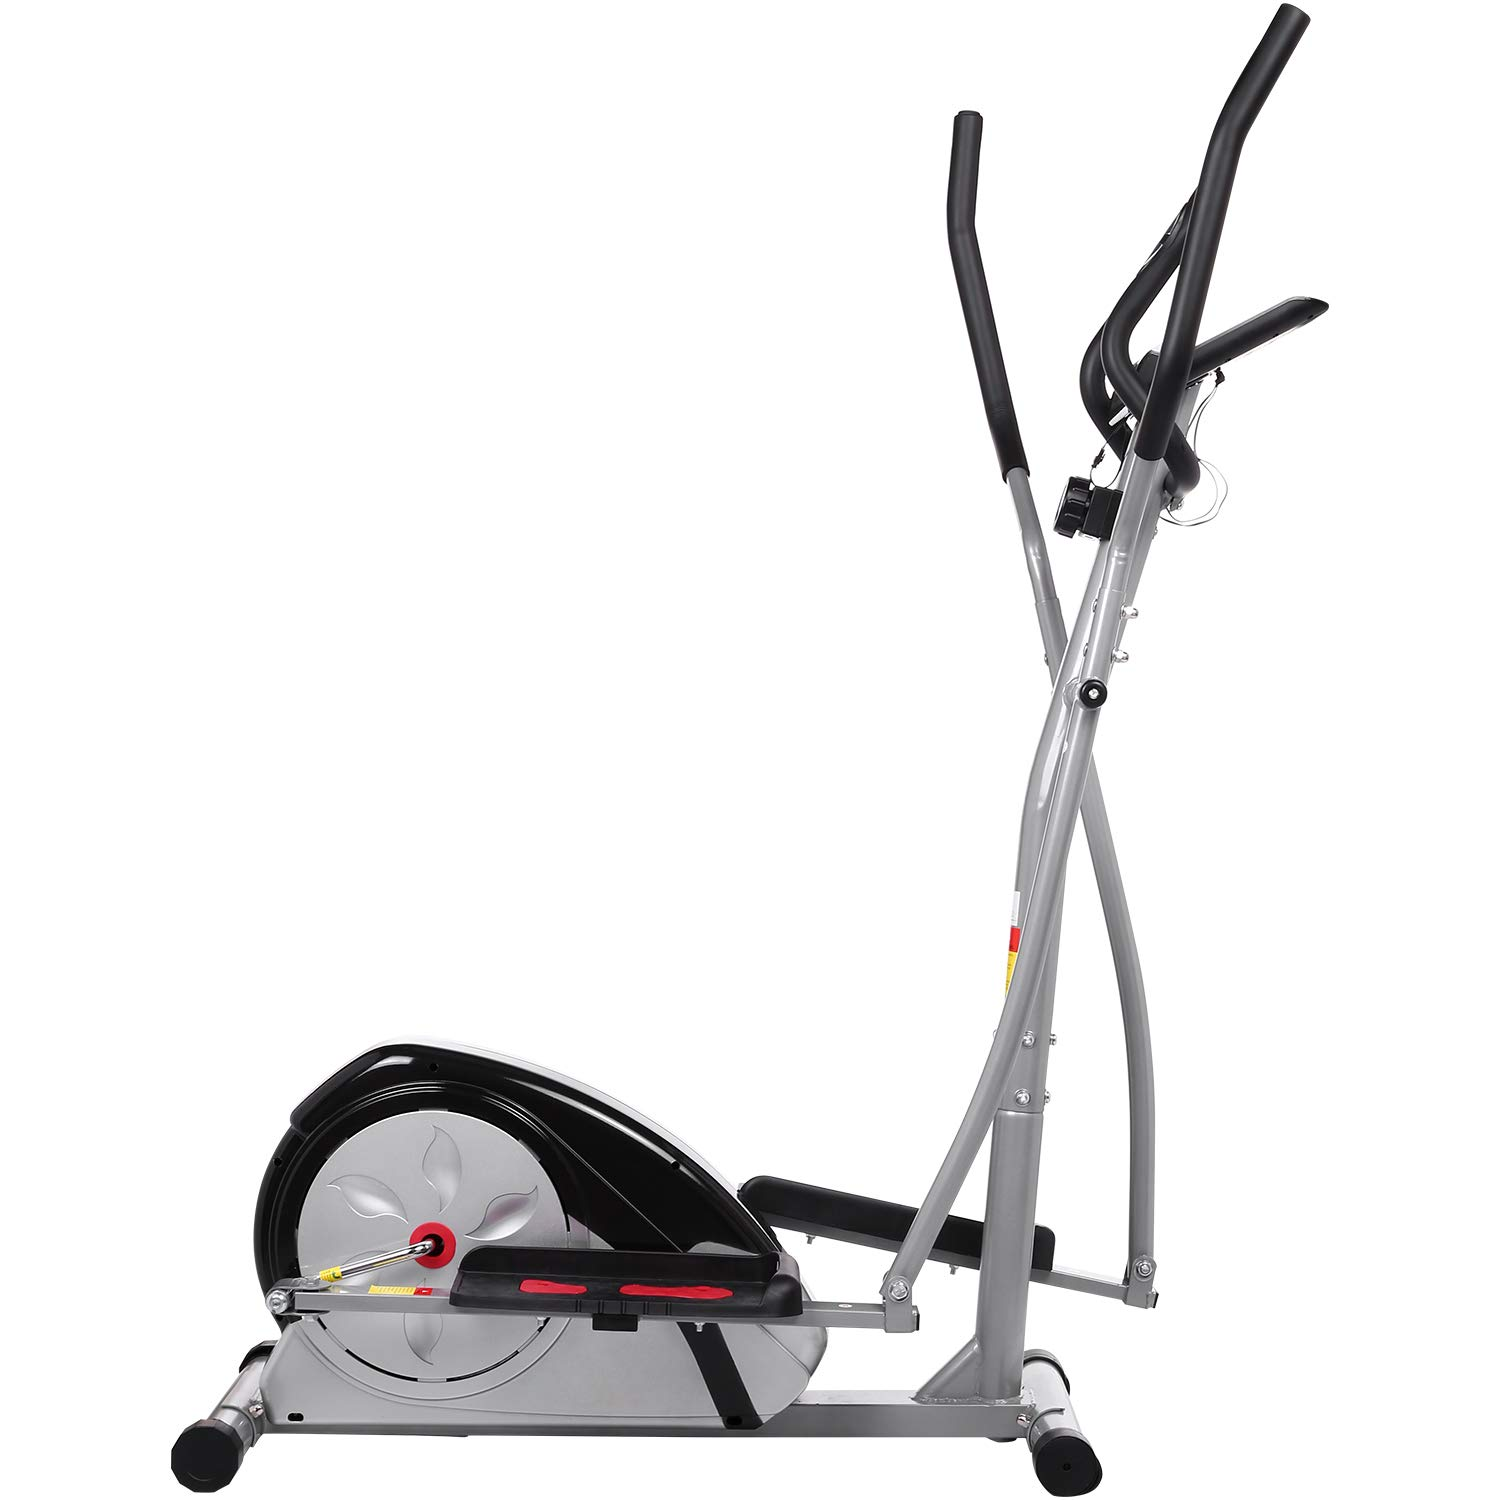 Fast 88 Portable Elliptical Machine Fitness Workout Cardio Training Machine, Magnetic Control Mute Elliptical Trainer with LCD Monitor,Top Levels Elliptical Machine Trainer (Grey) by Fast 88 (Image #4)